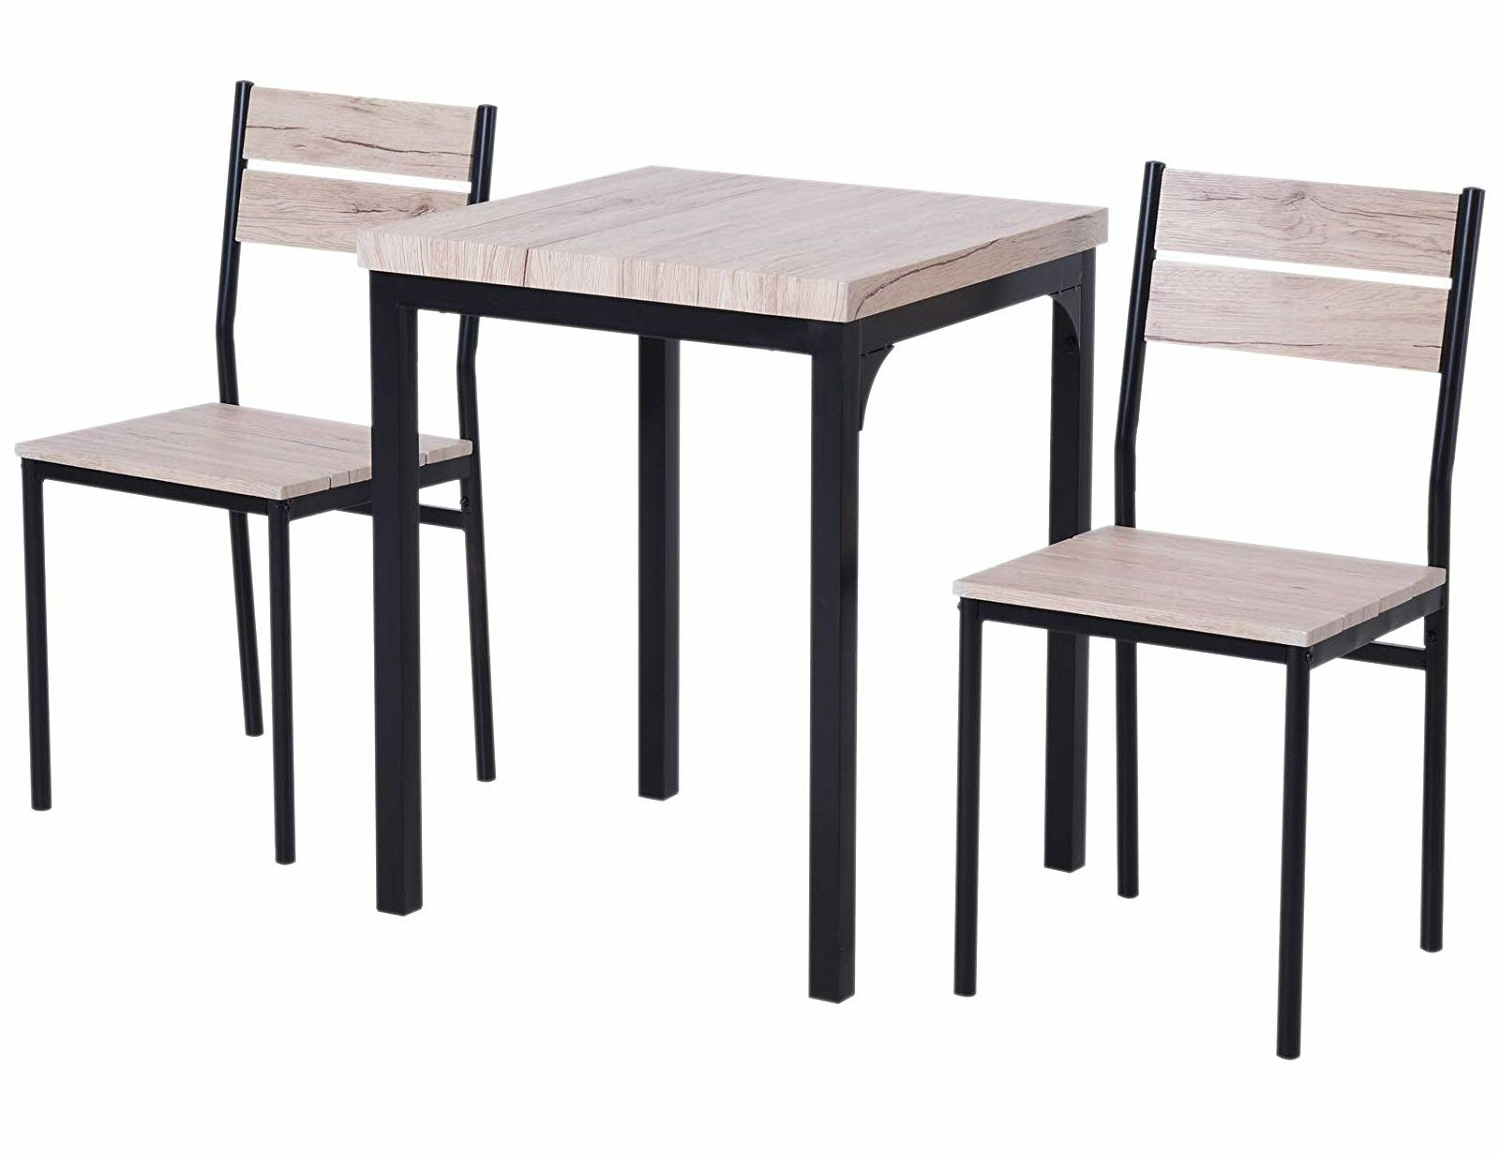 Biggs 5 Piece Counter Height Solid Wood Dining Sets (Set Of 5) Intended For 2018 Staley Rustic Country 3 Piece Dining Set (Gallery 16 of 20)